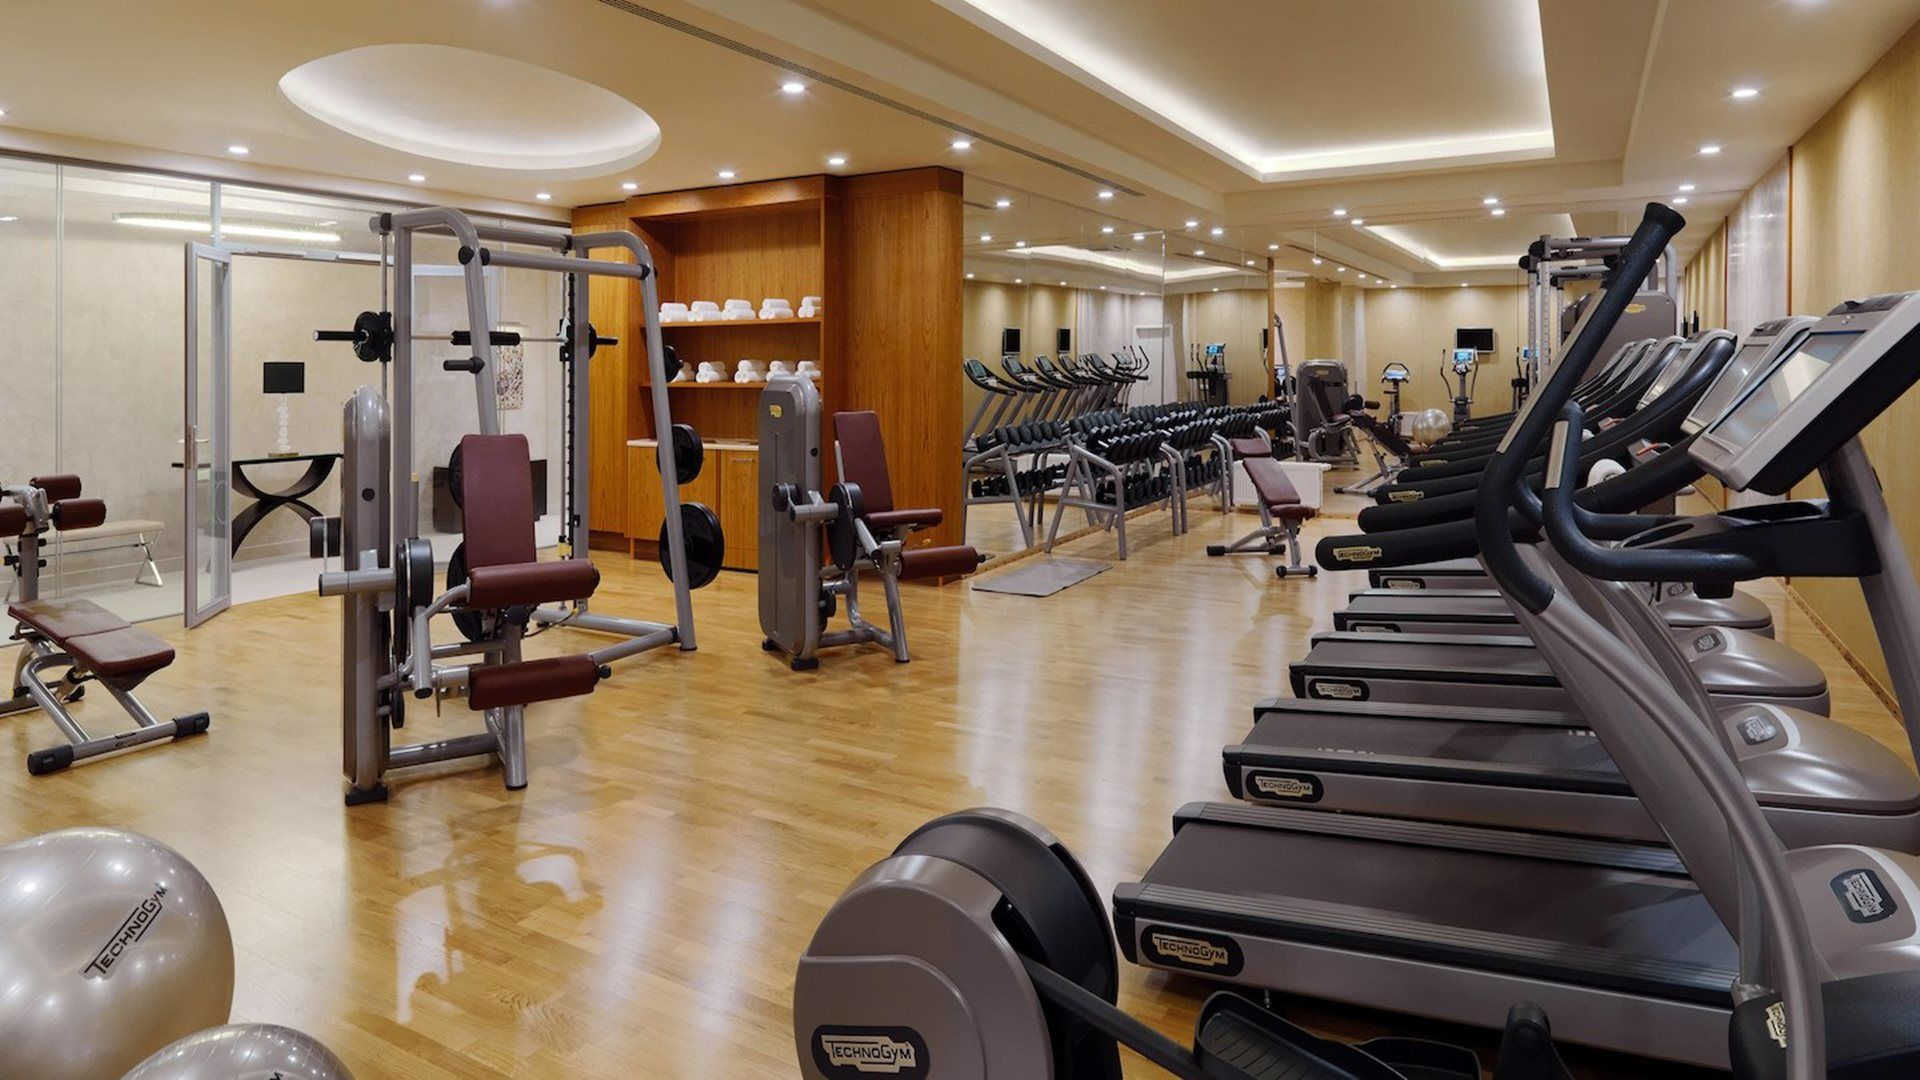 Hotel Marriott Novy Arbat Gym